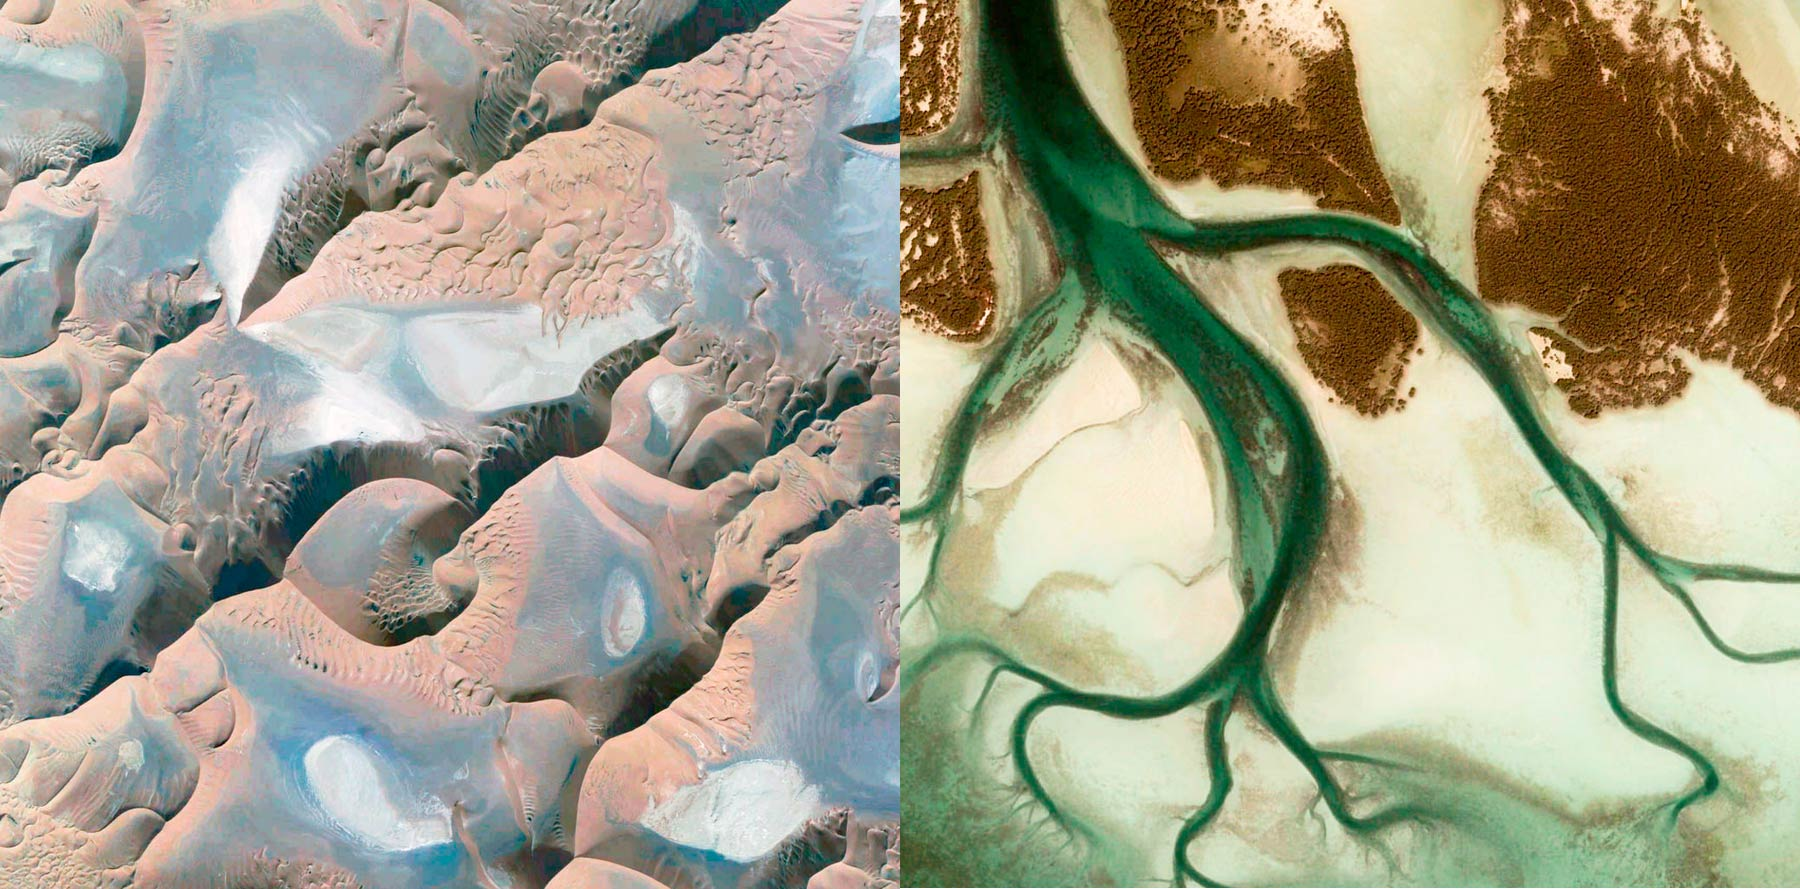 Satellite view of landscapes with organic shapes